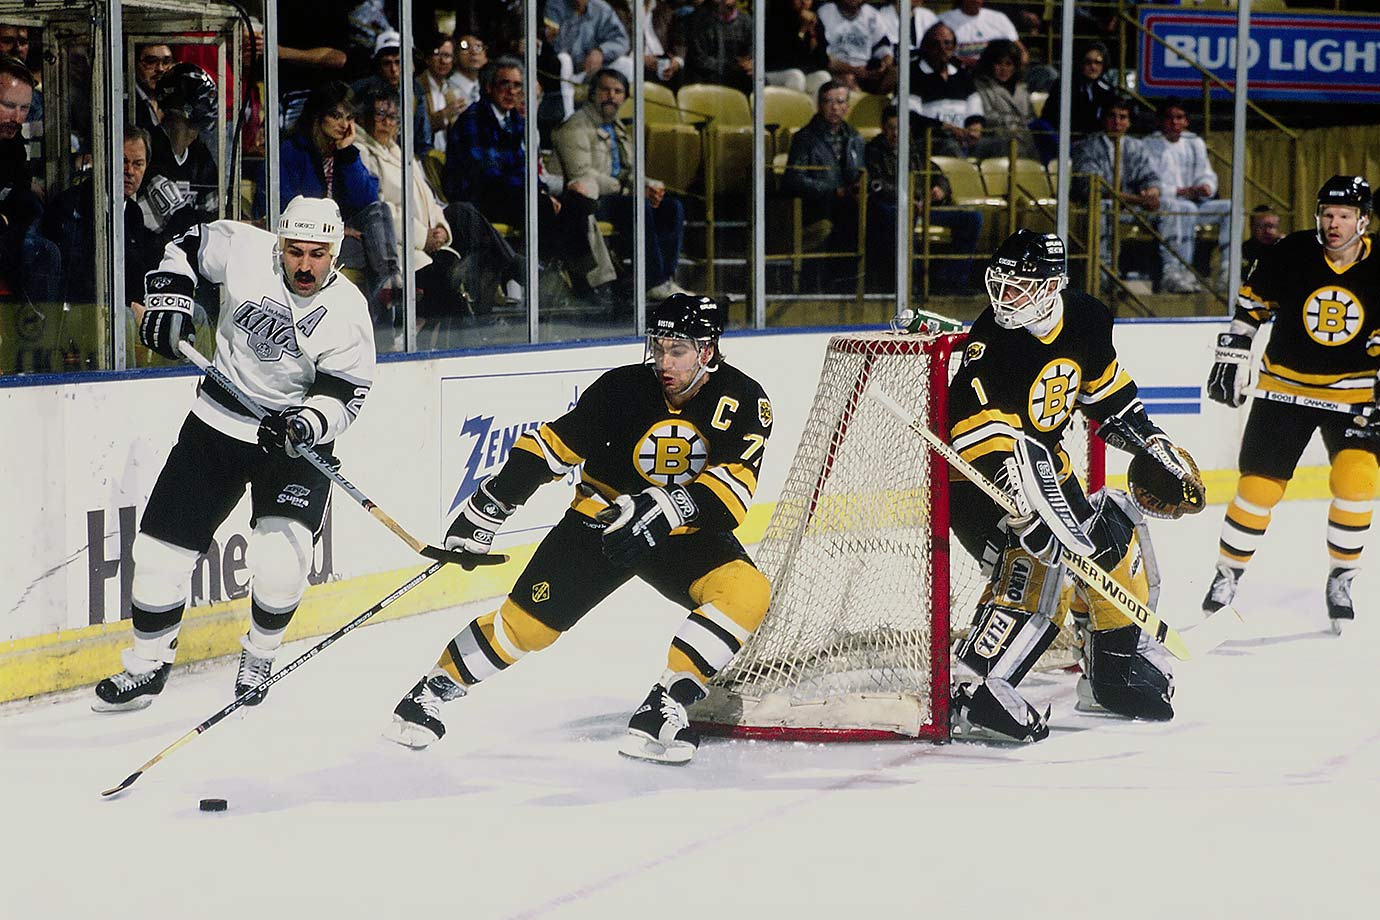 Feb. 15, 1989 — Boston Bruins vs. Los Angeles Kings